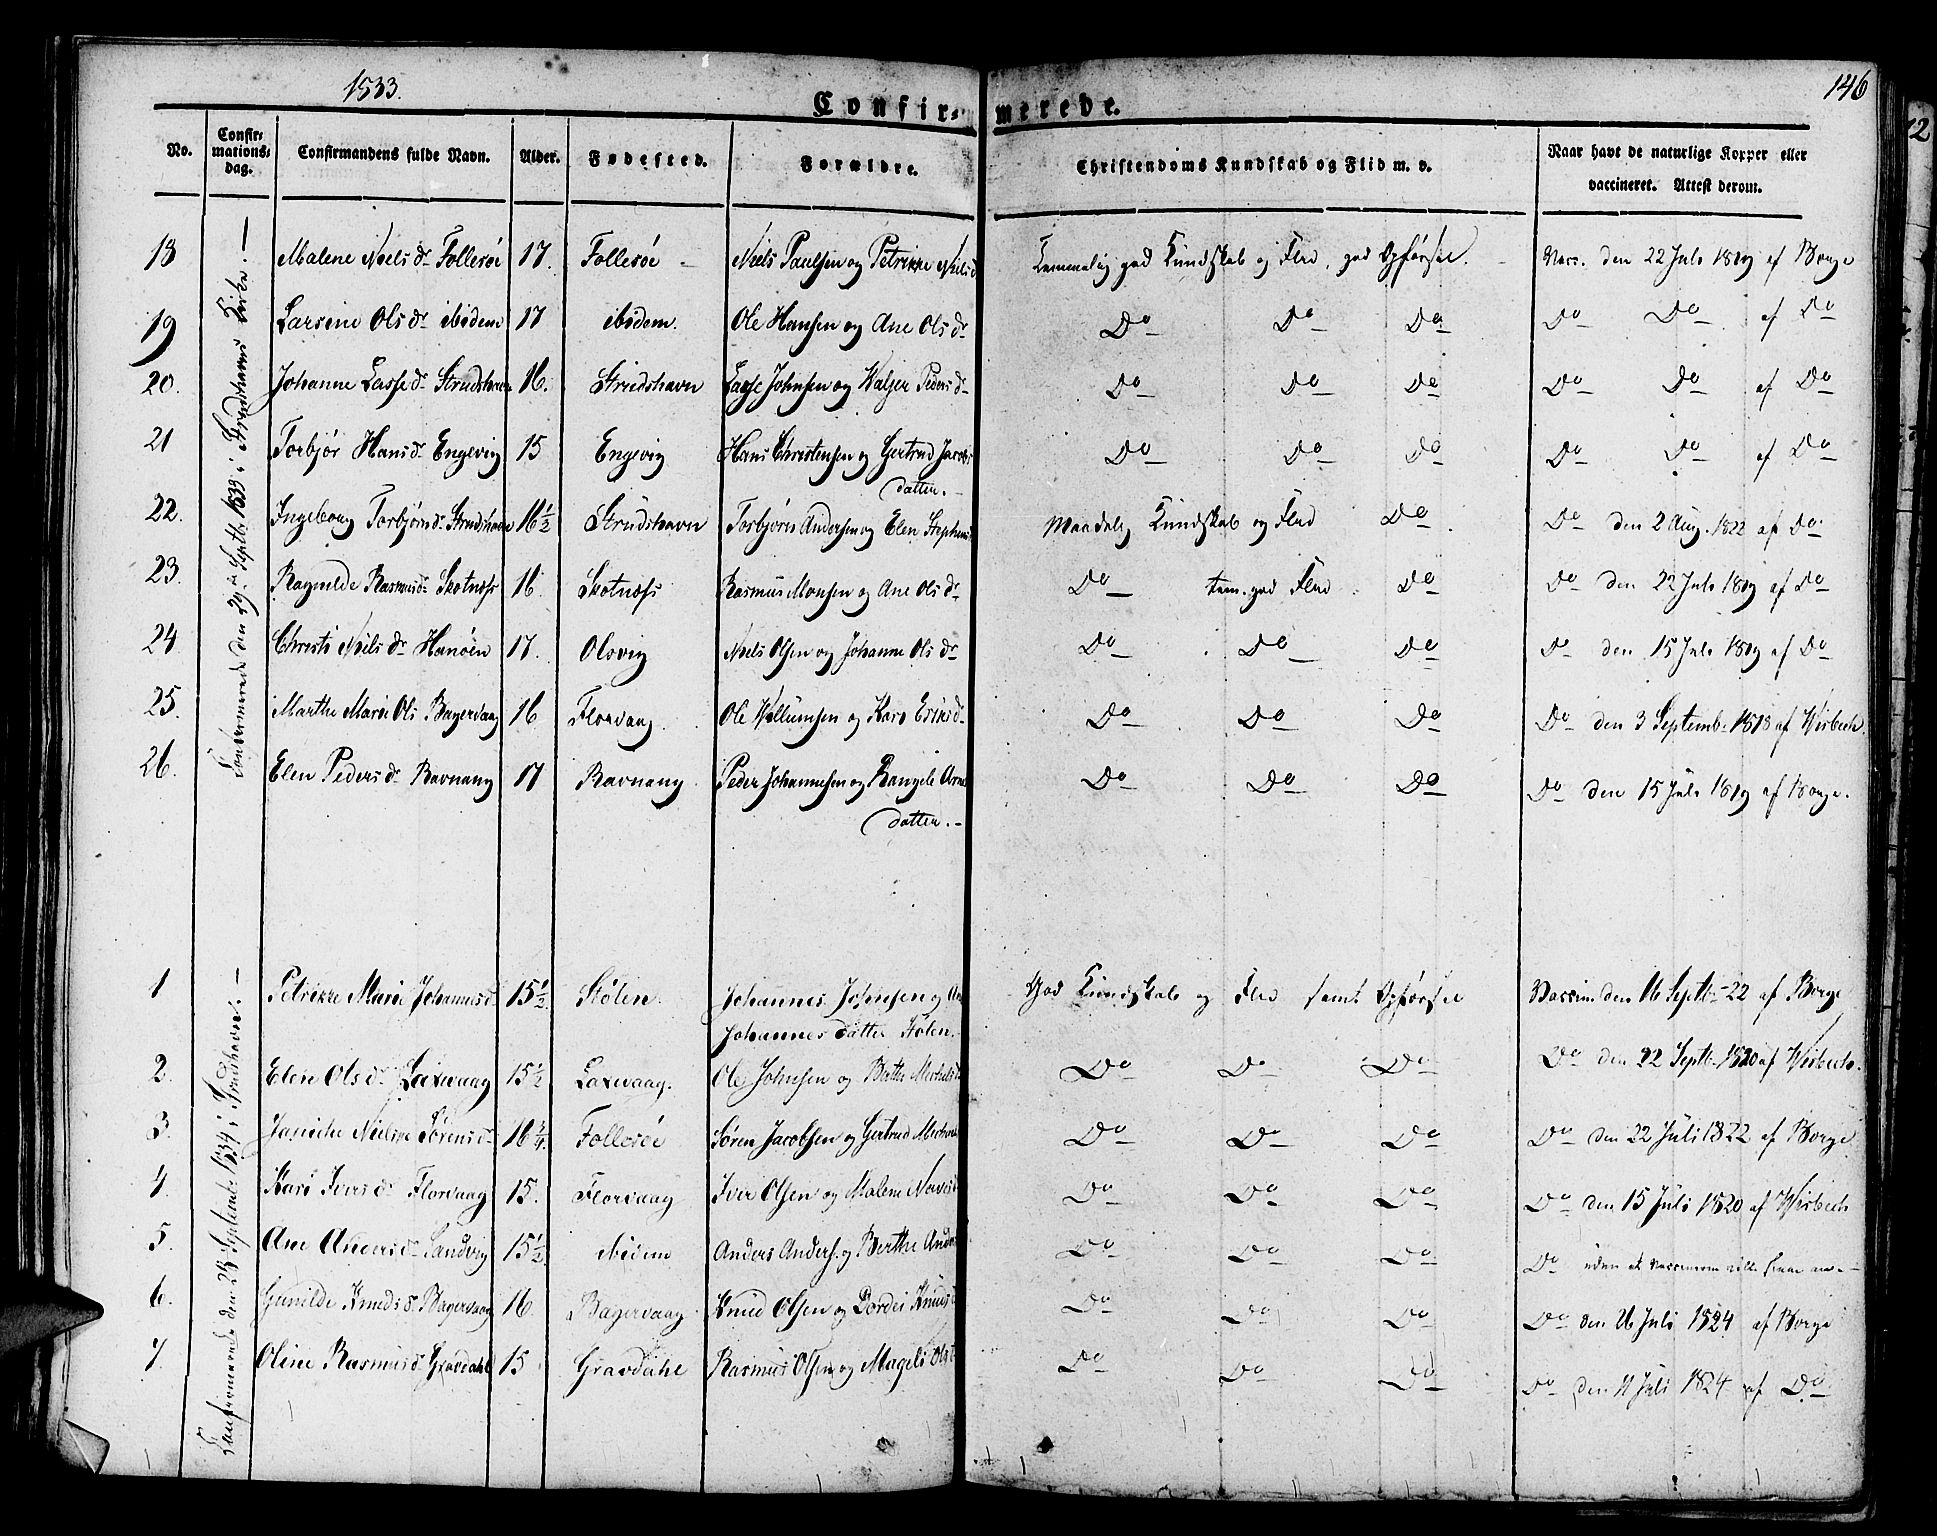 SAB, Askøy Sokneprestembete, H/Ha/Haa/Haaa/L0004: Parish register (official) no. A 4, 1825-1845, p. 146